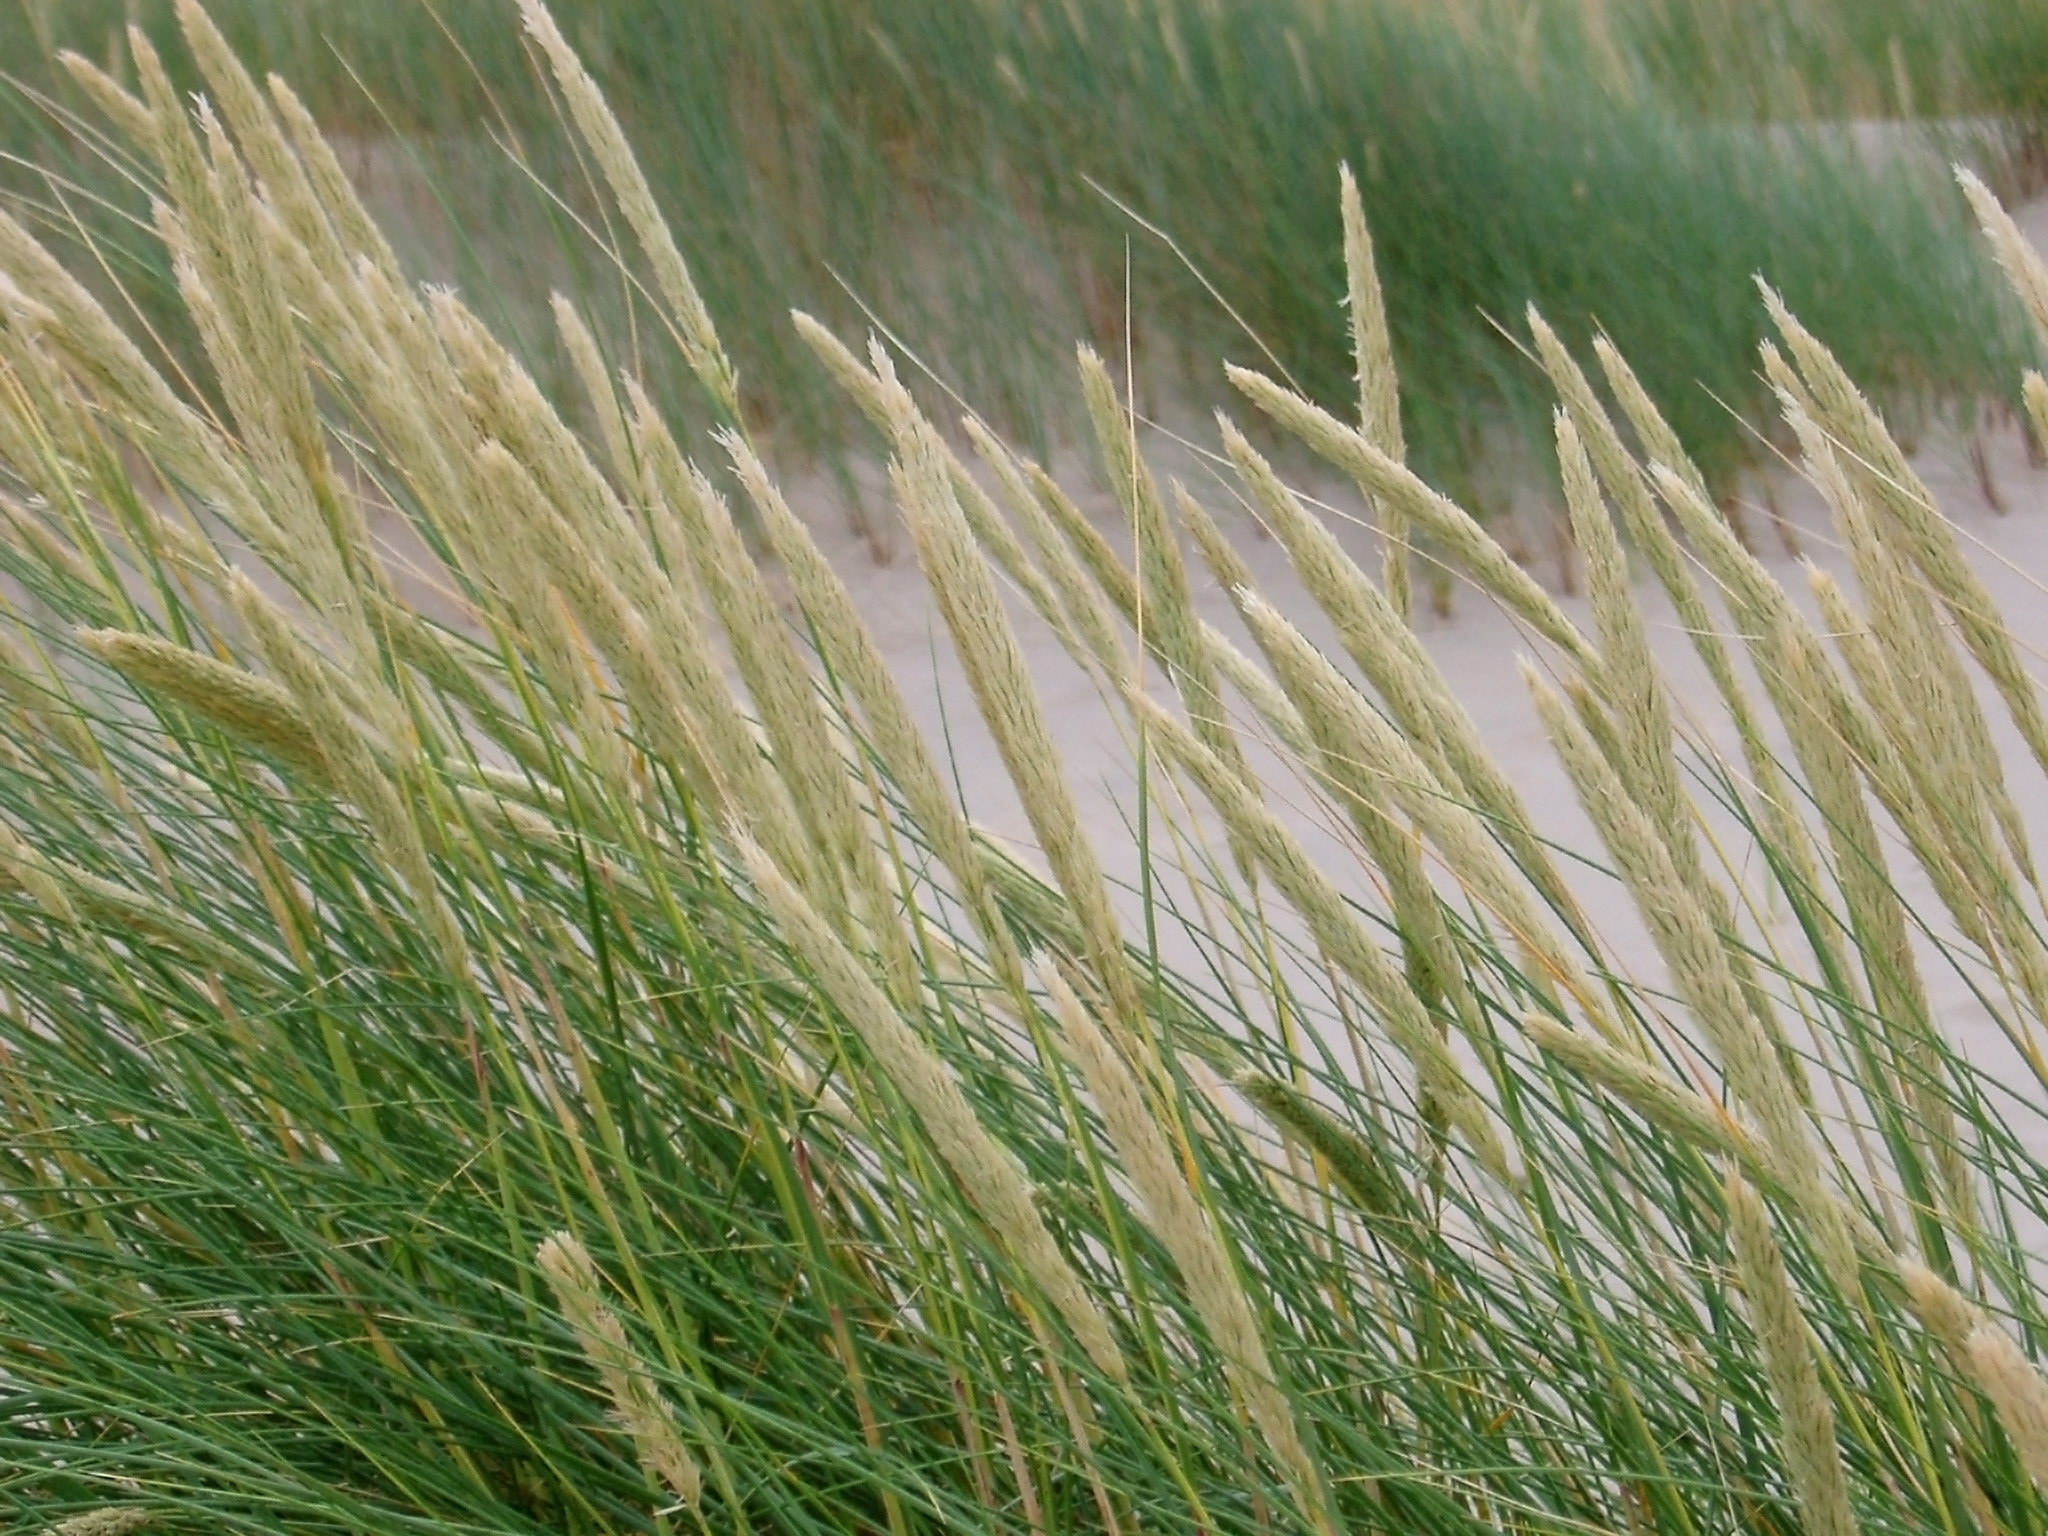 Close up Shot of Plenty Green Grasses at the River Side For Wallpaper Backgrounds.